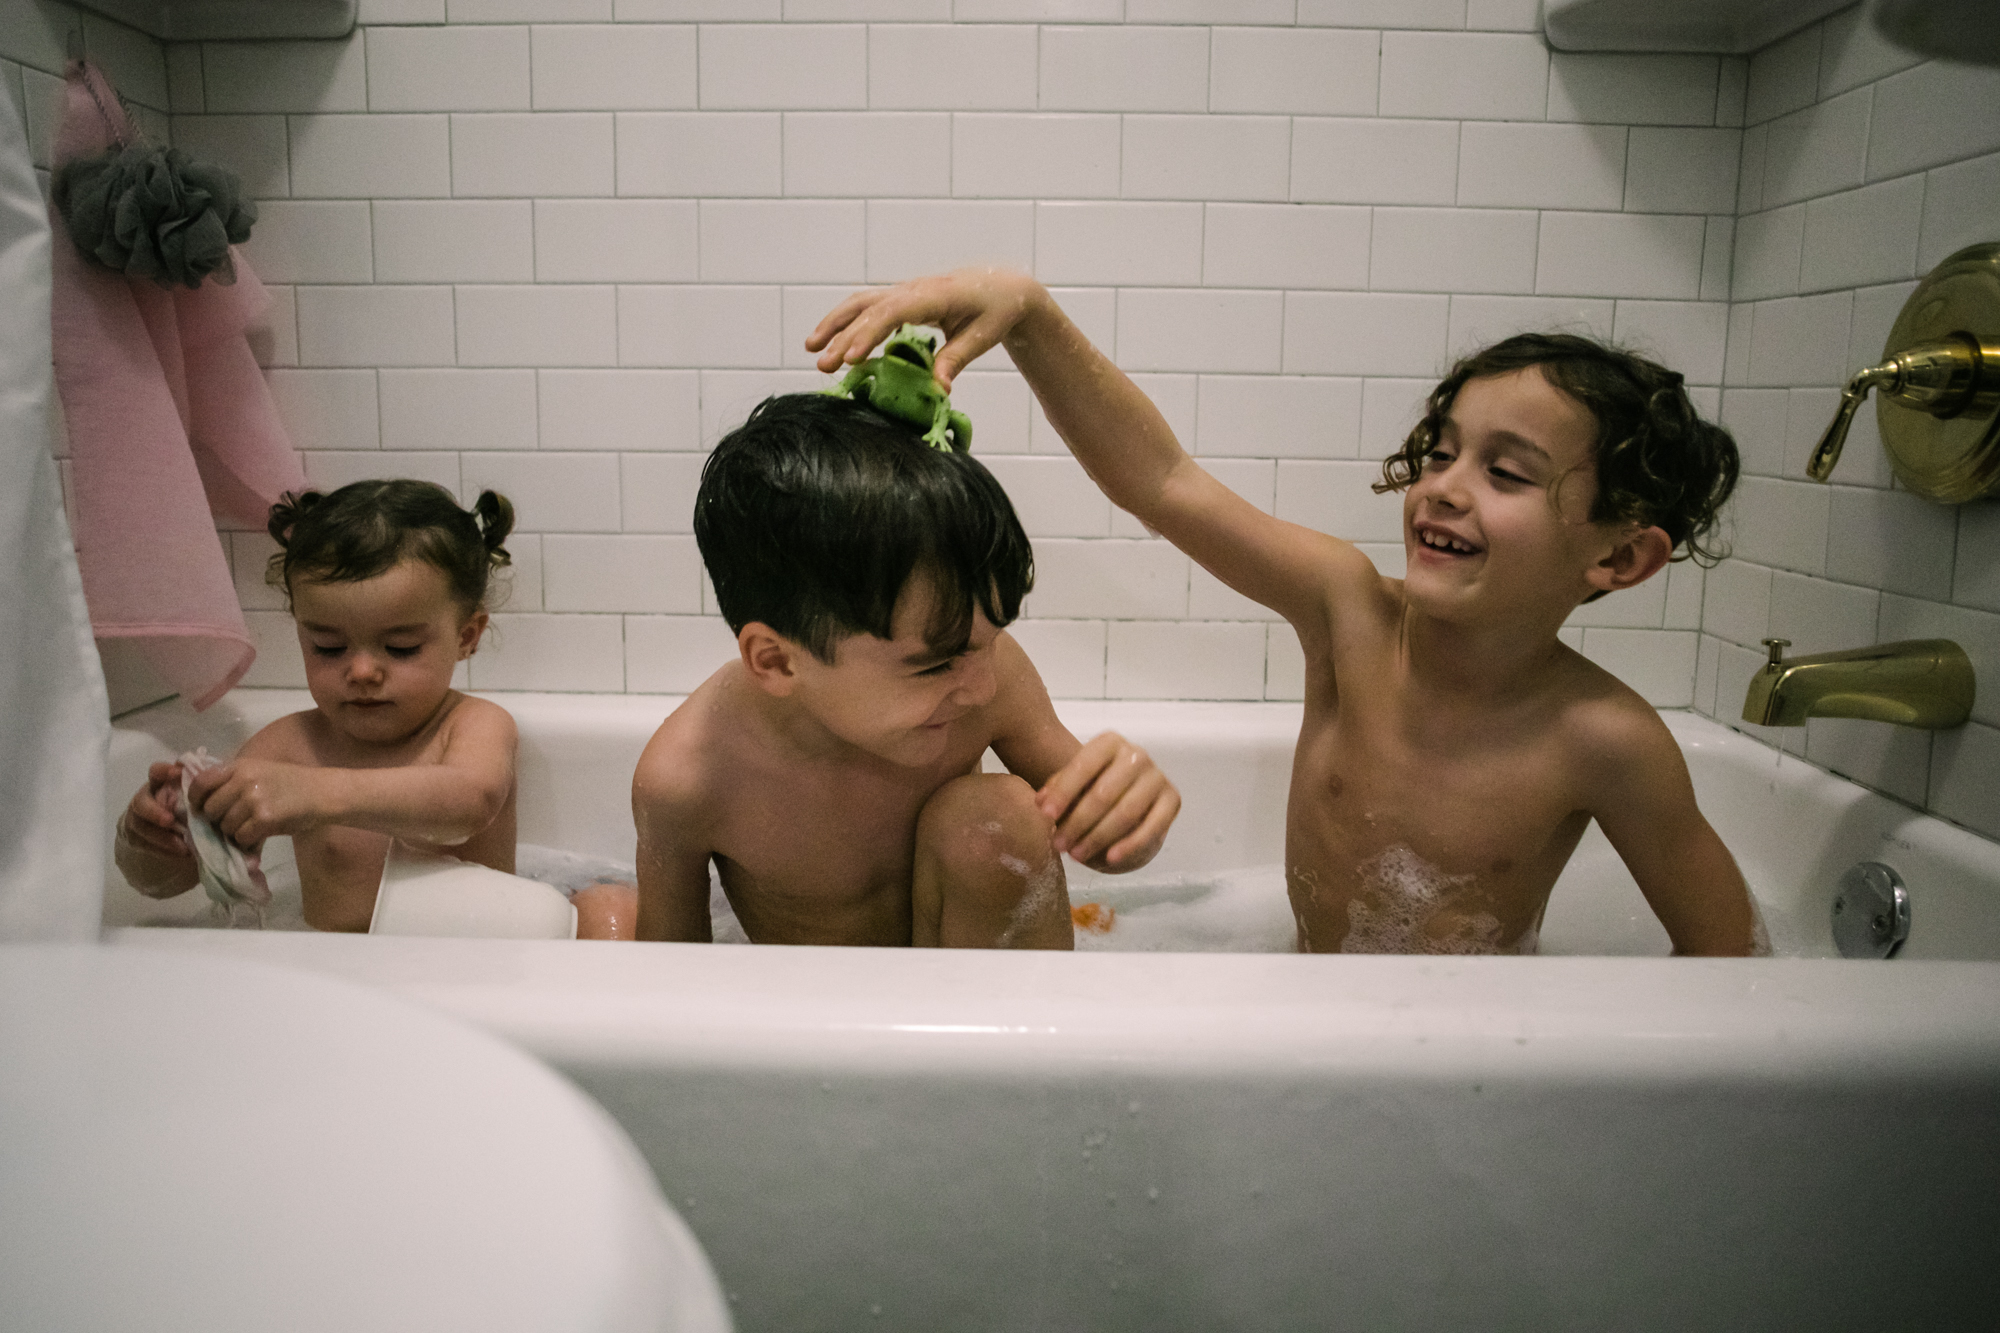 3 siblings take a bath and one child puts a pretend frog on another child's head